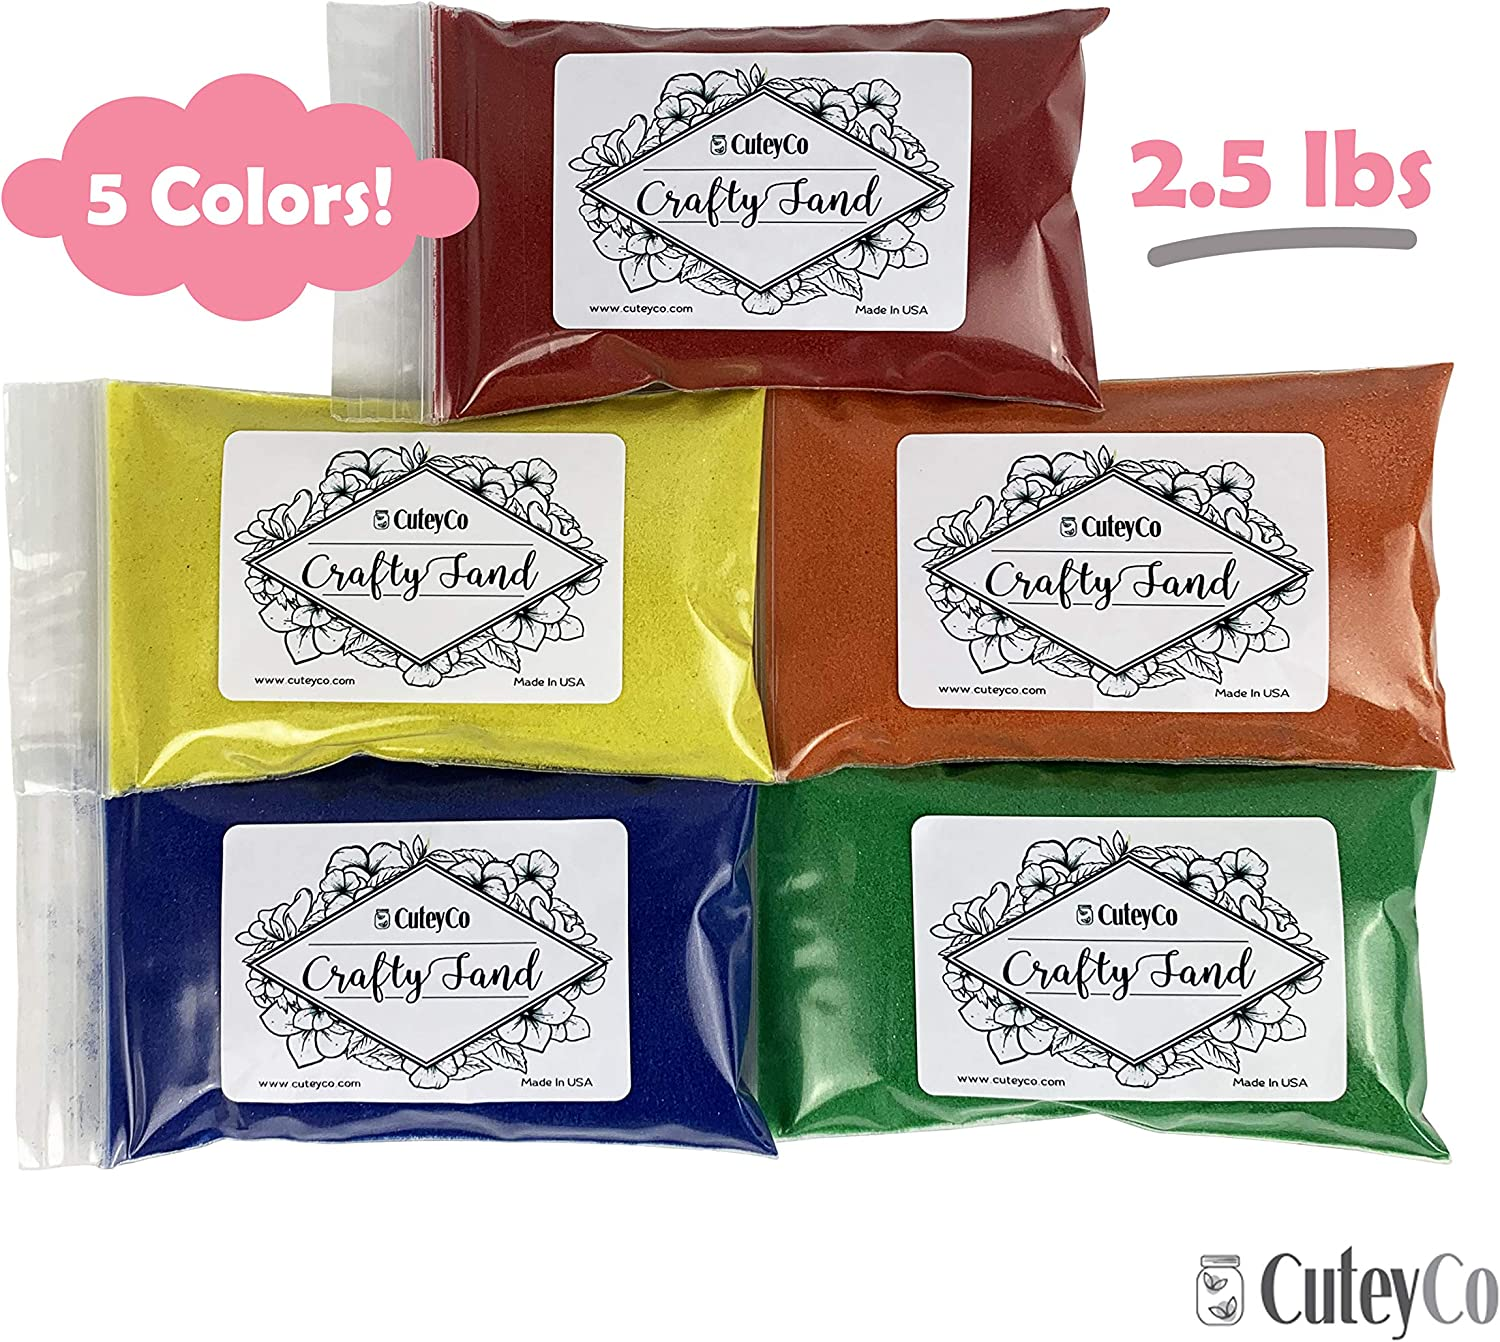 14 Colors CuteyCo Crafty Sand Pack 15 lbs of Vibrant Craft Sand /& Play Sand